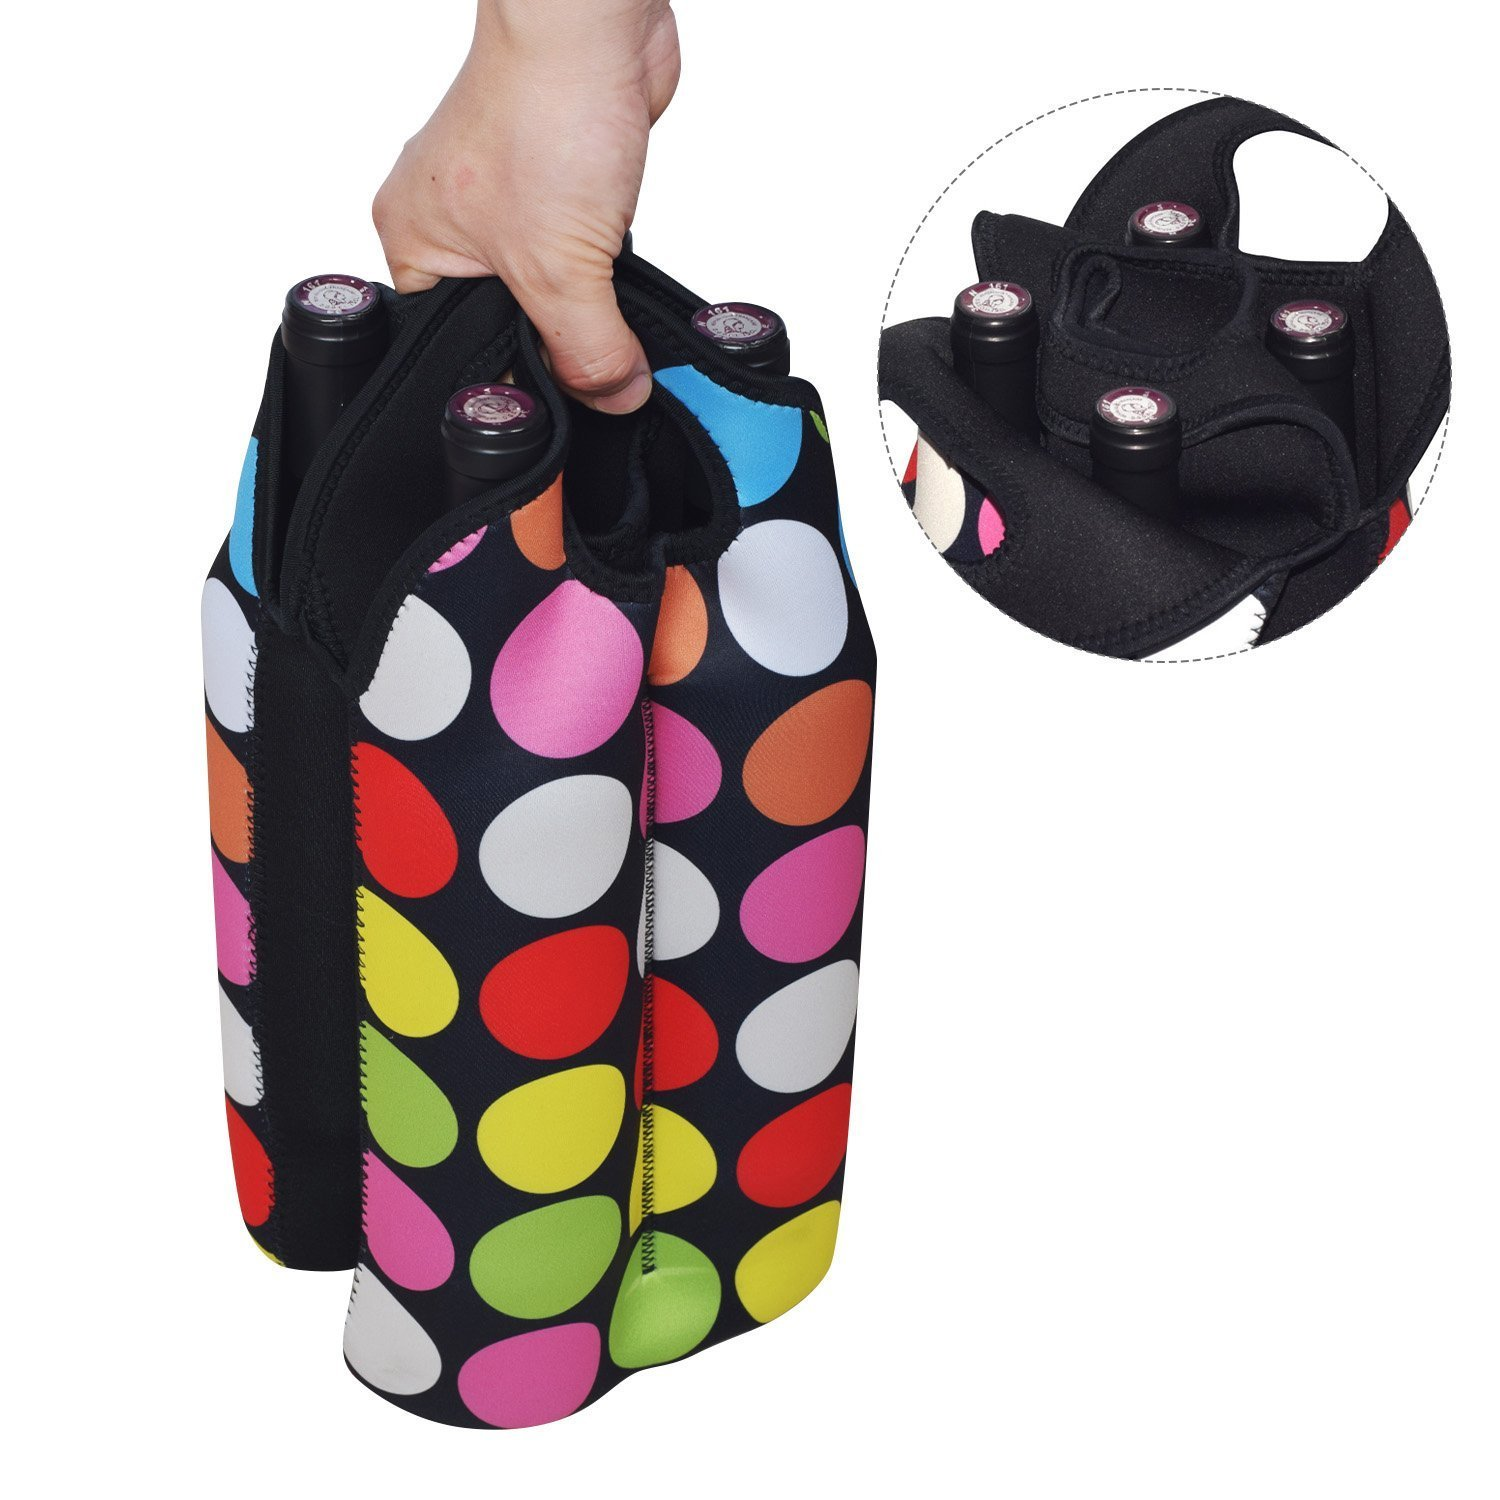 Zoresyn 2-Bottle Neoprene Wine/Water Bottle Tote/ wine bag for Wine/Champagne/ Beverages,Containers,Soft Drinks,Sodas,Sports Water Bottles,Baby Bottles sz-99